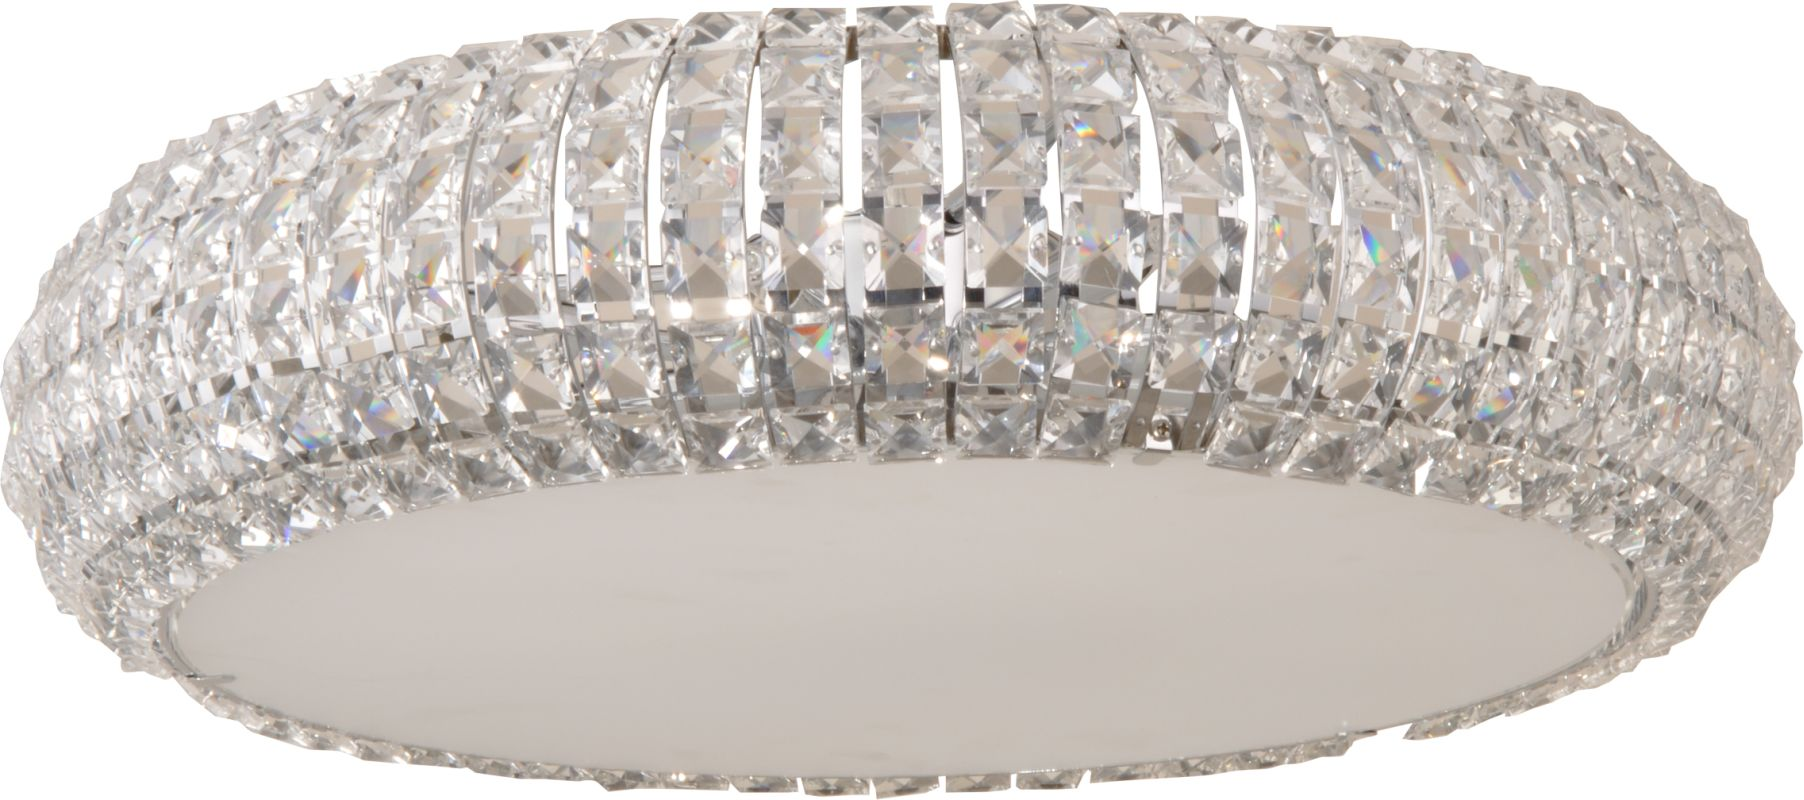 ET2 E21801-20PC Polished Chrome Contemporary Bijou Ceiling Light Sale $478.00 ITEM: bci1276068 ID#:E21801-20PC UPC: 845094032656 :